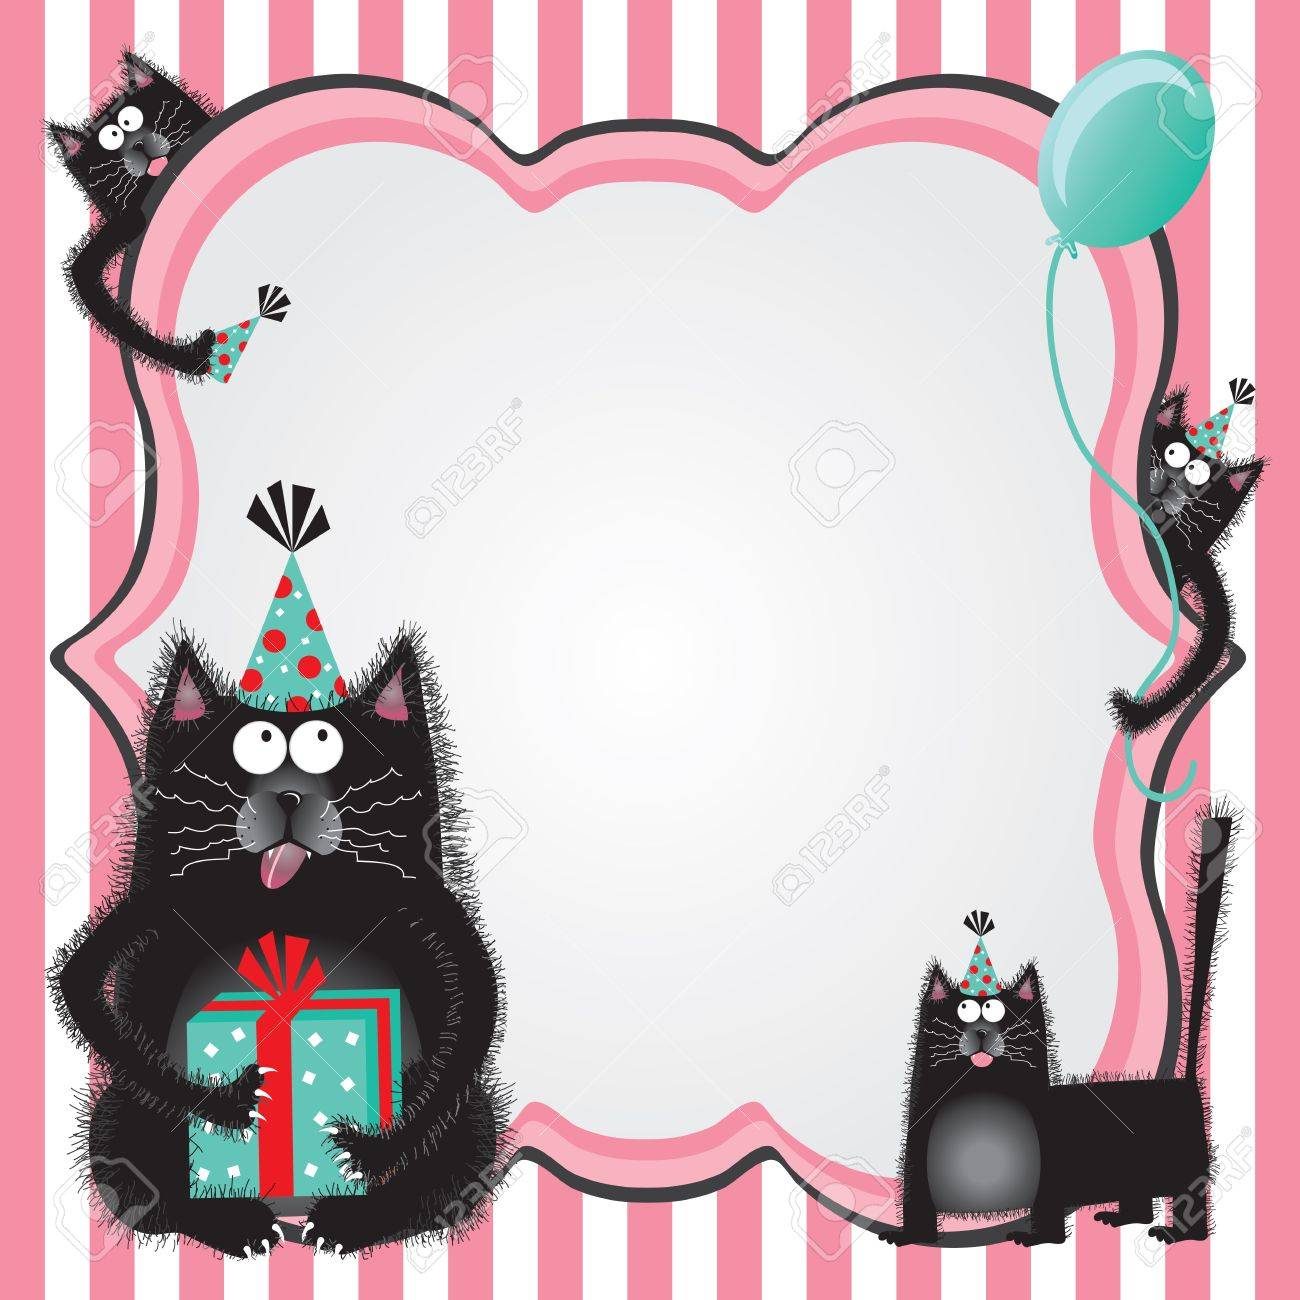 Funky And Fuzzy Kitty Cats Wearing Party Hats Holding Gifts Welcome You To A Birthday